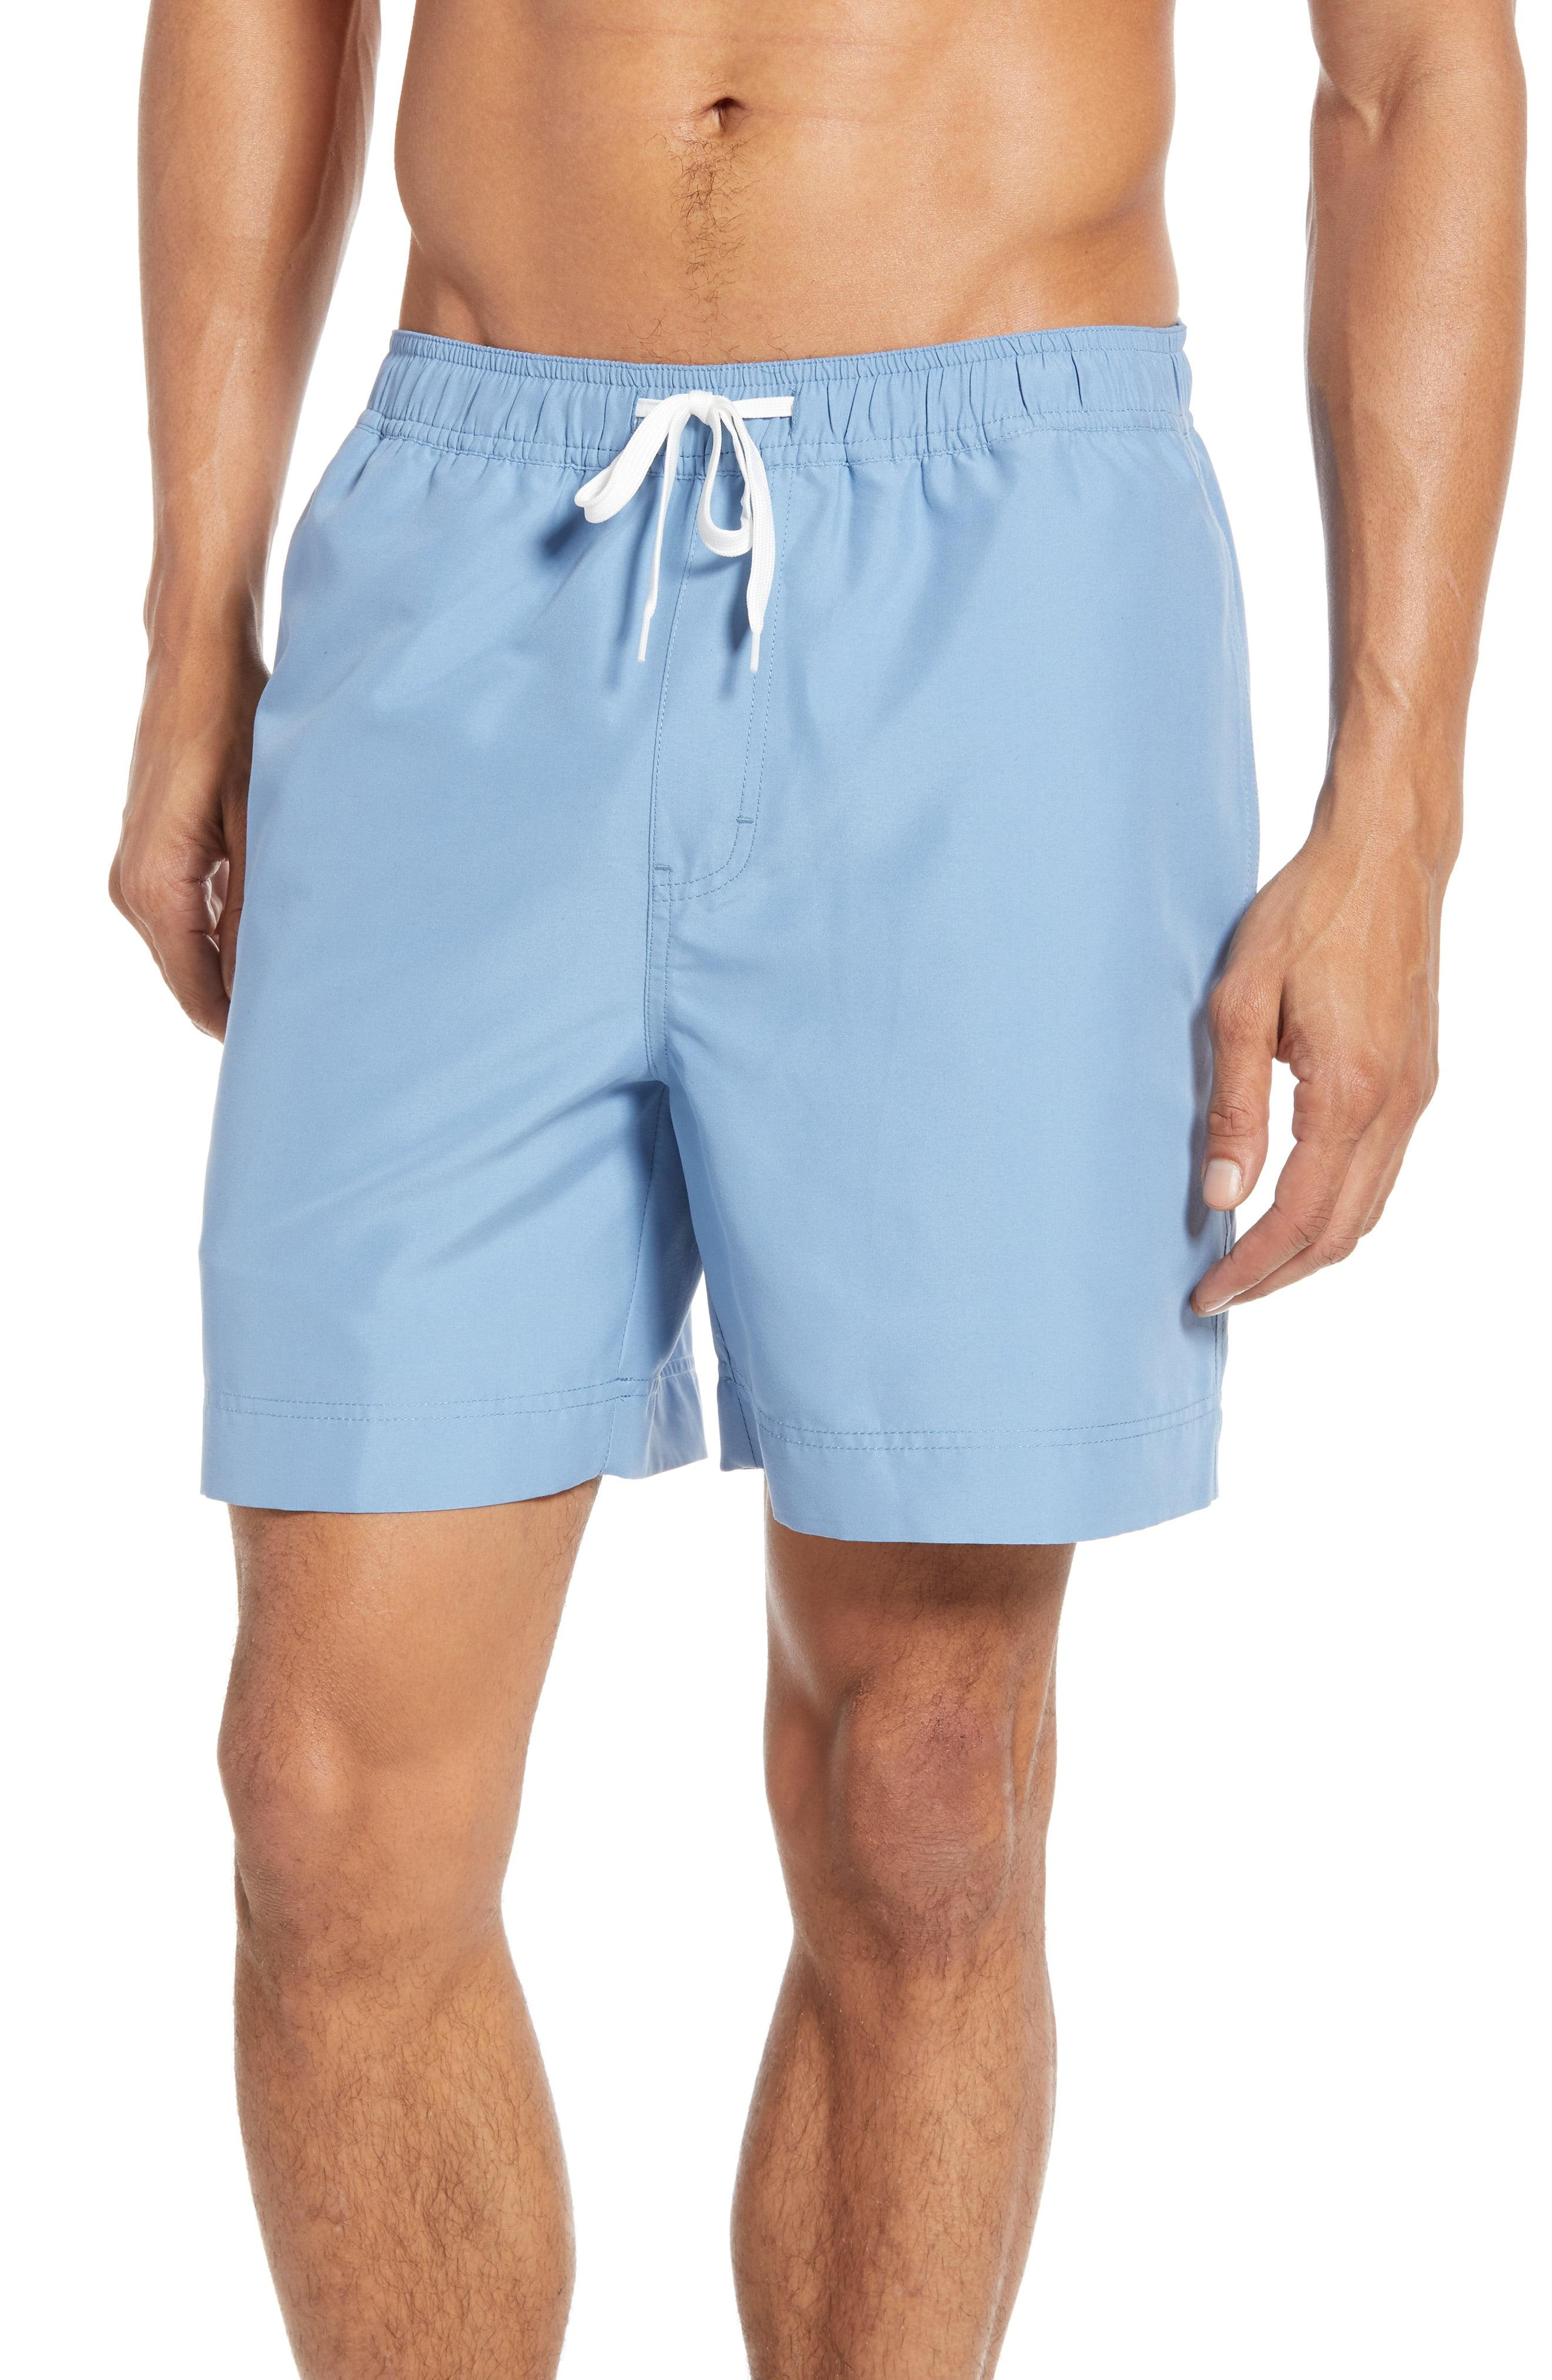 8498361fafe90 Lyst - Nordstrom 1901 Solid Volley Swim Trunks in Blue for Men